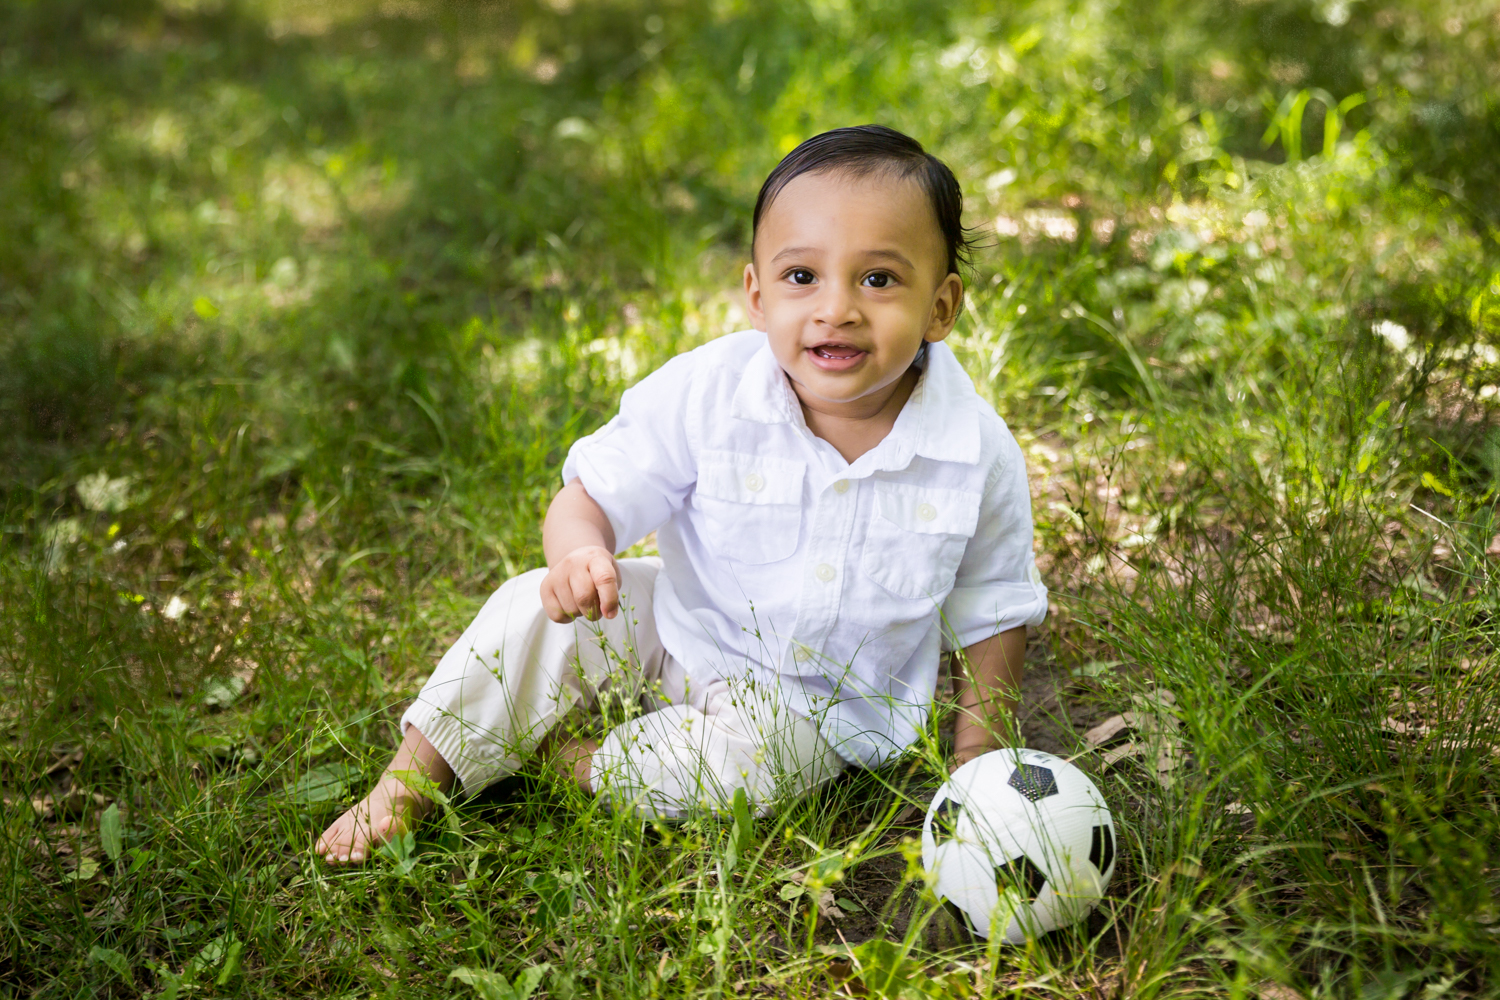 Forest Hills family portrait of toddler sitting in grass with soccer ball